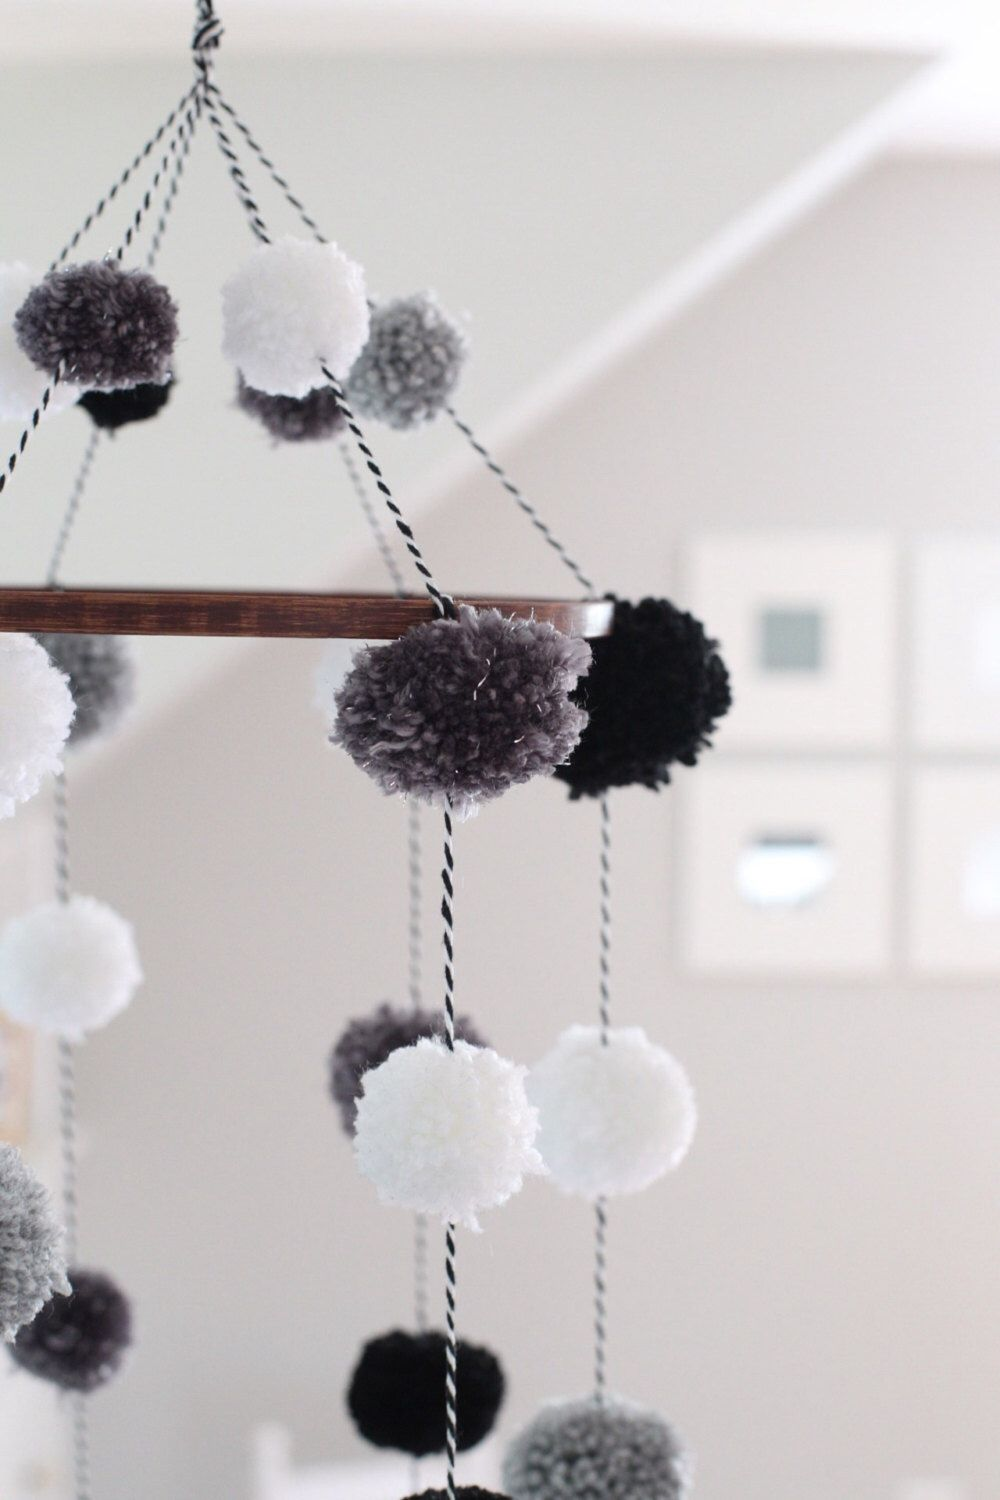 Handmade Pom Pom Mobile with Stained Wooden Hoop by Shop180 on Etsy https://www.etsy.com/listing/250628754/handmade-pom-pom-mobile-with-stained